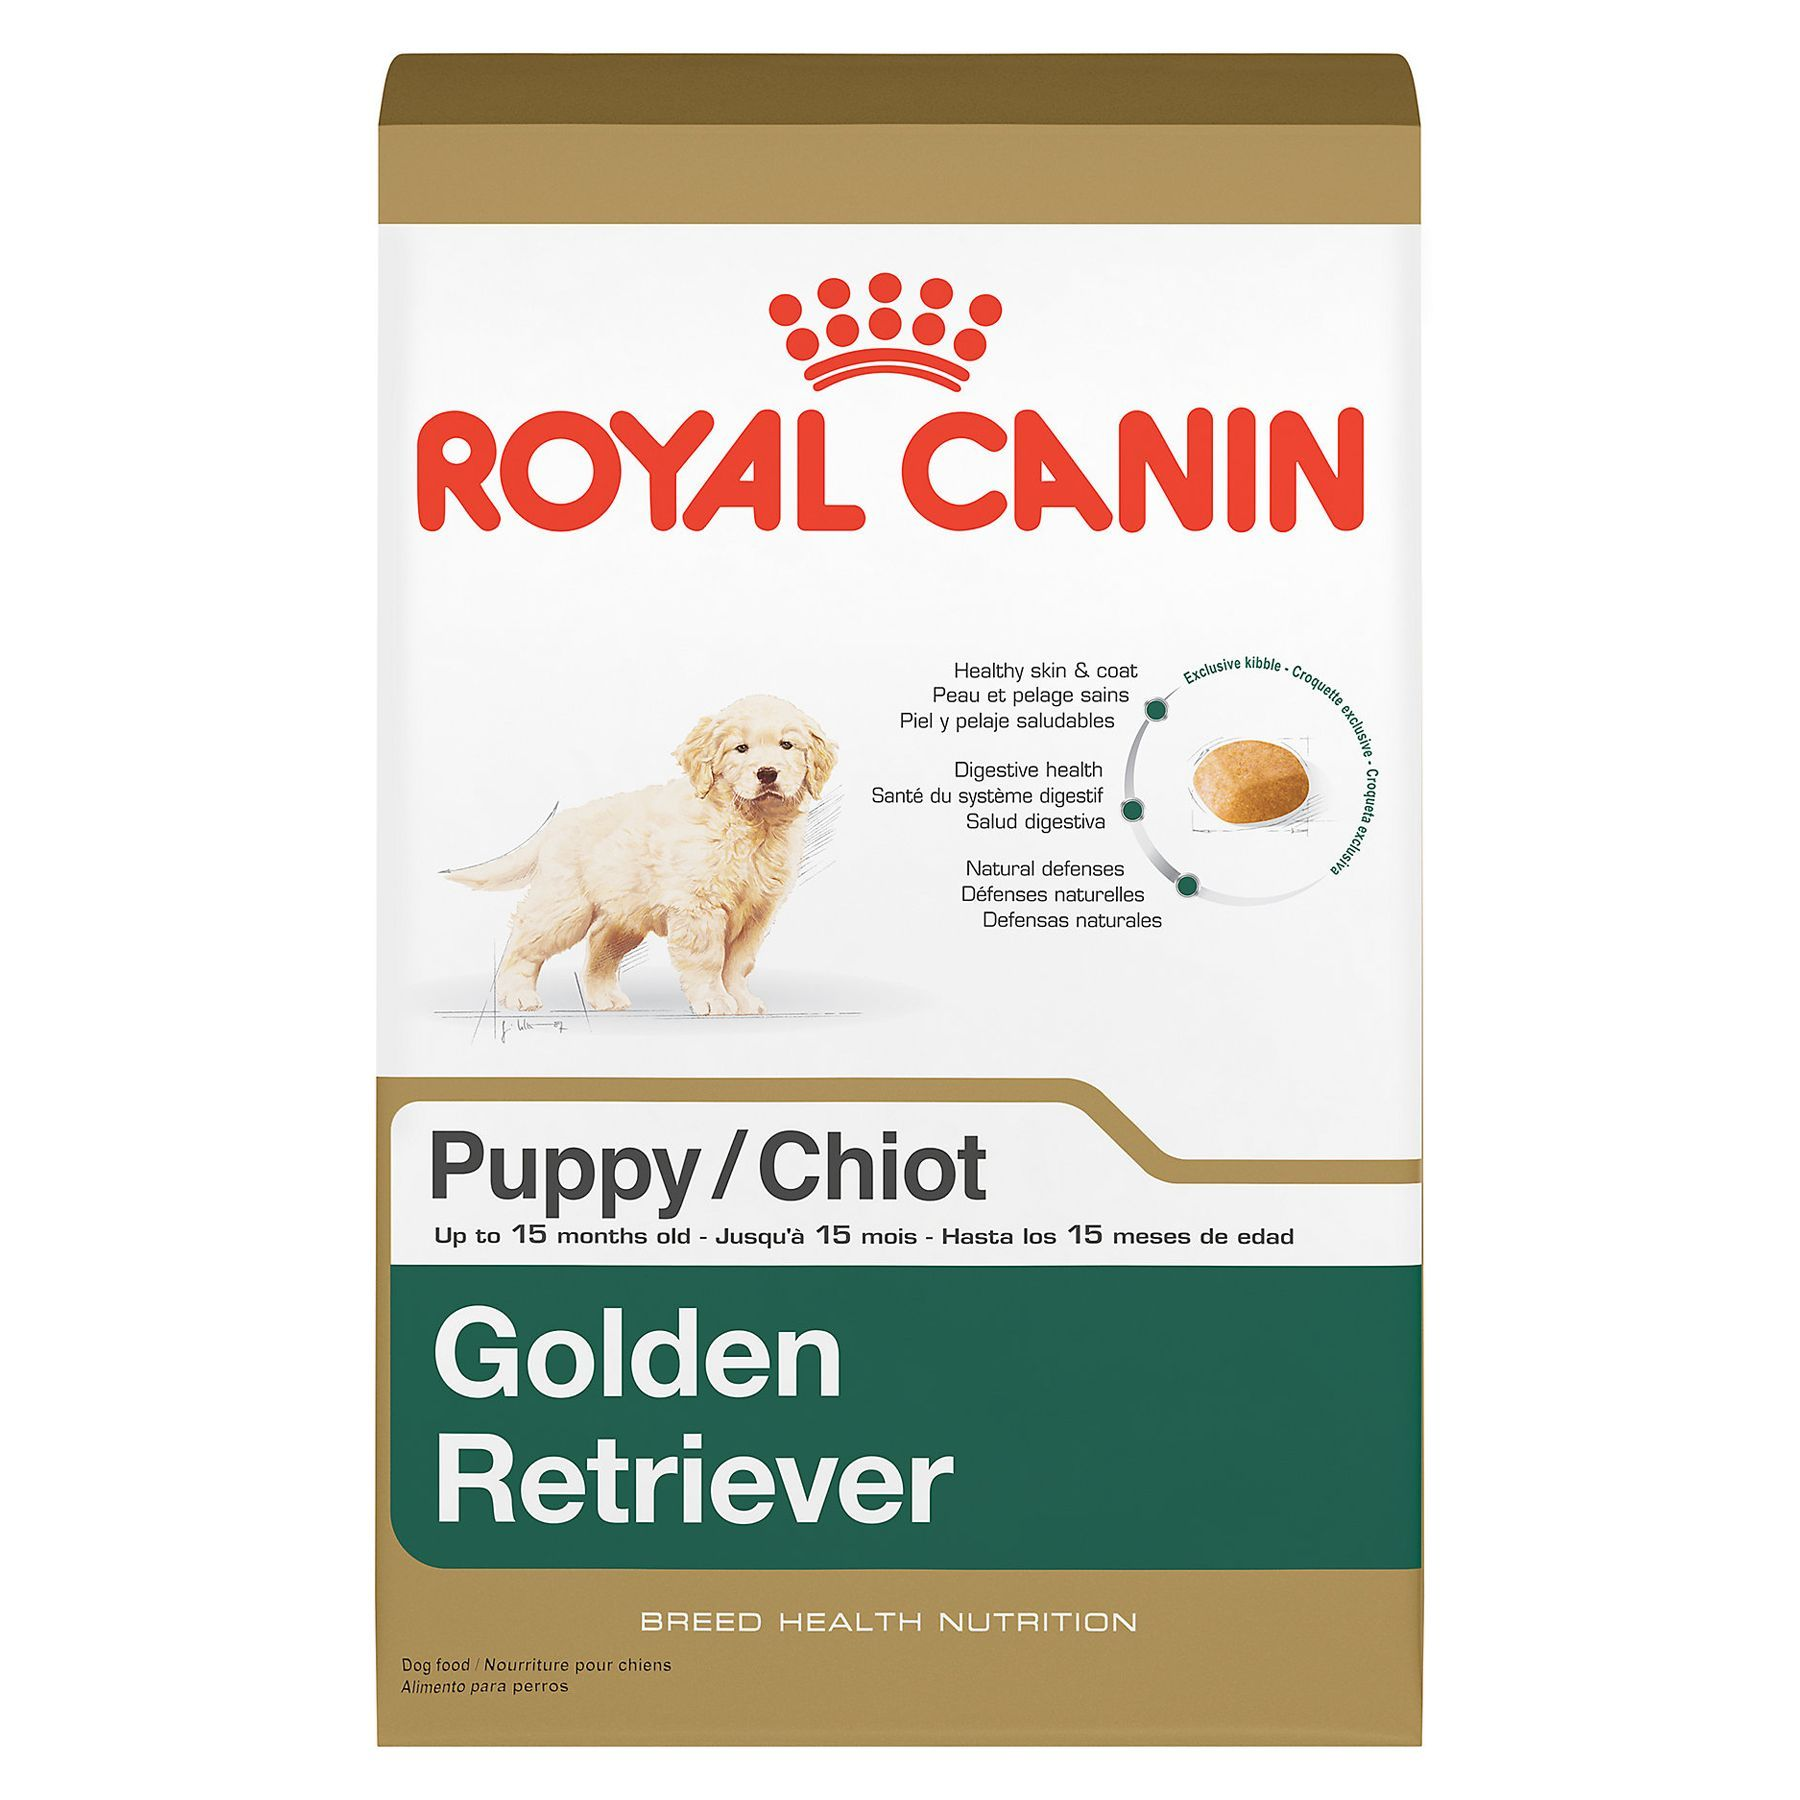 Royal Canin Breed Health Nutrition Golden Retriever Puppy Food